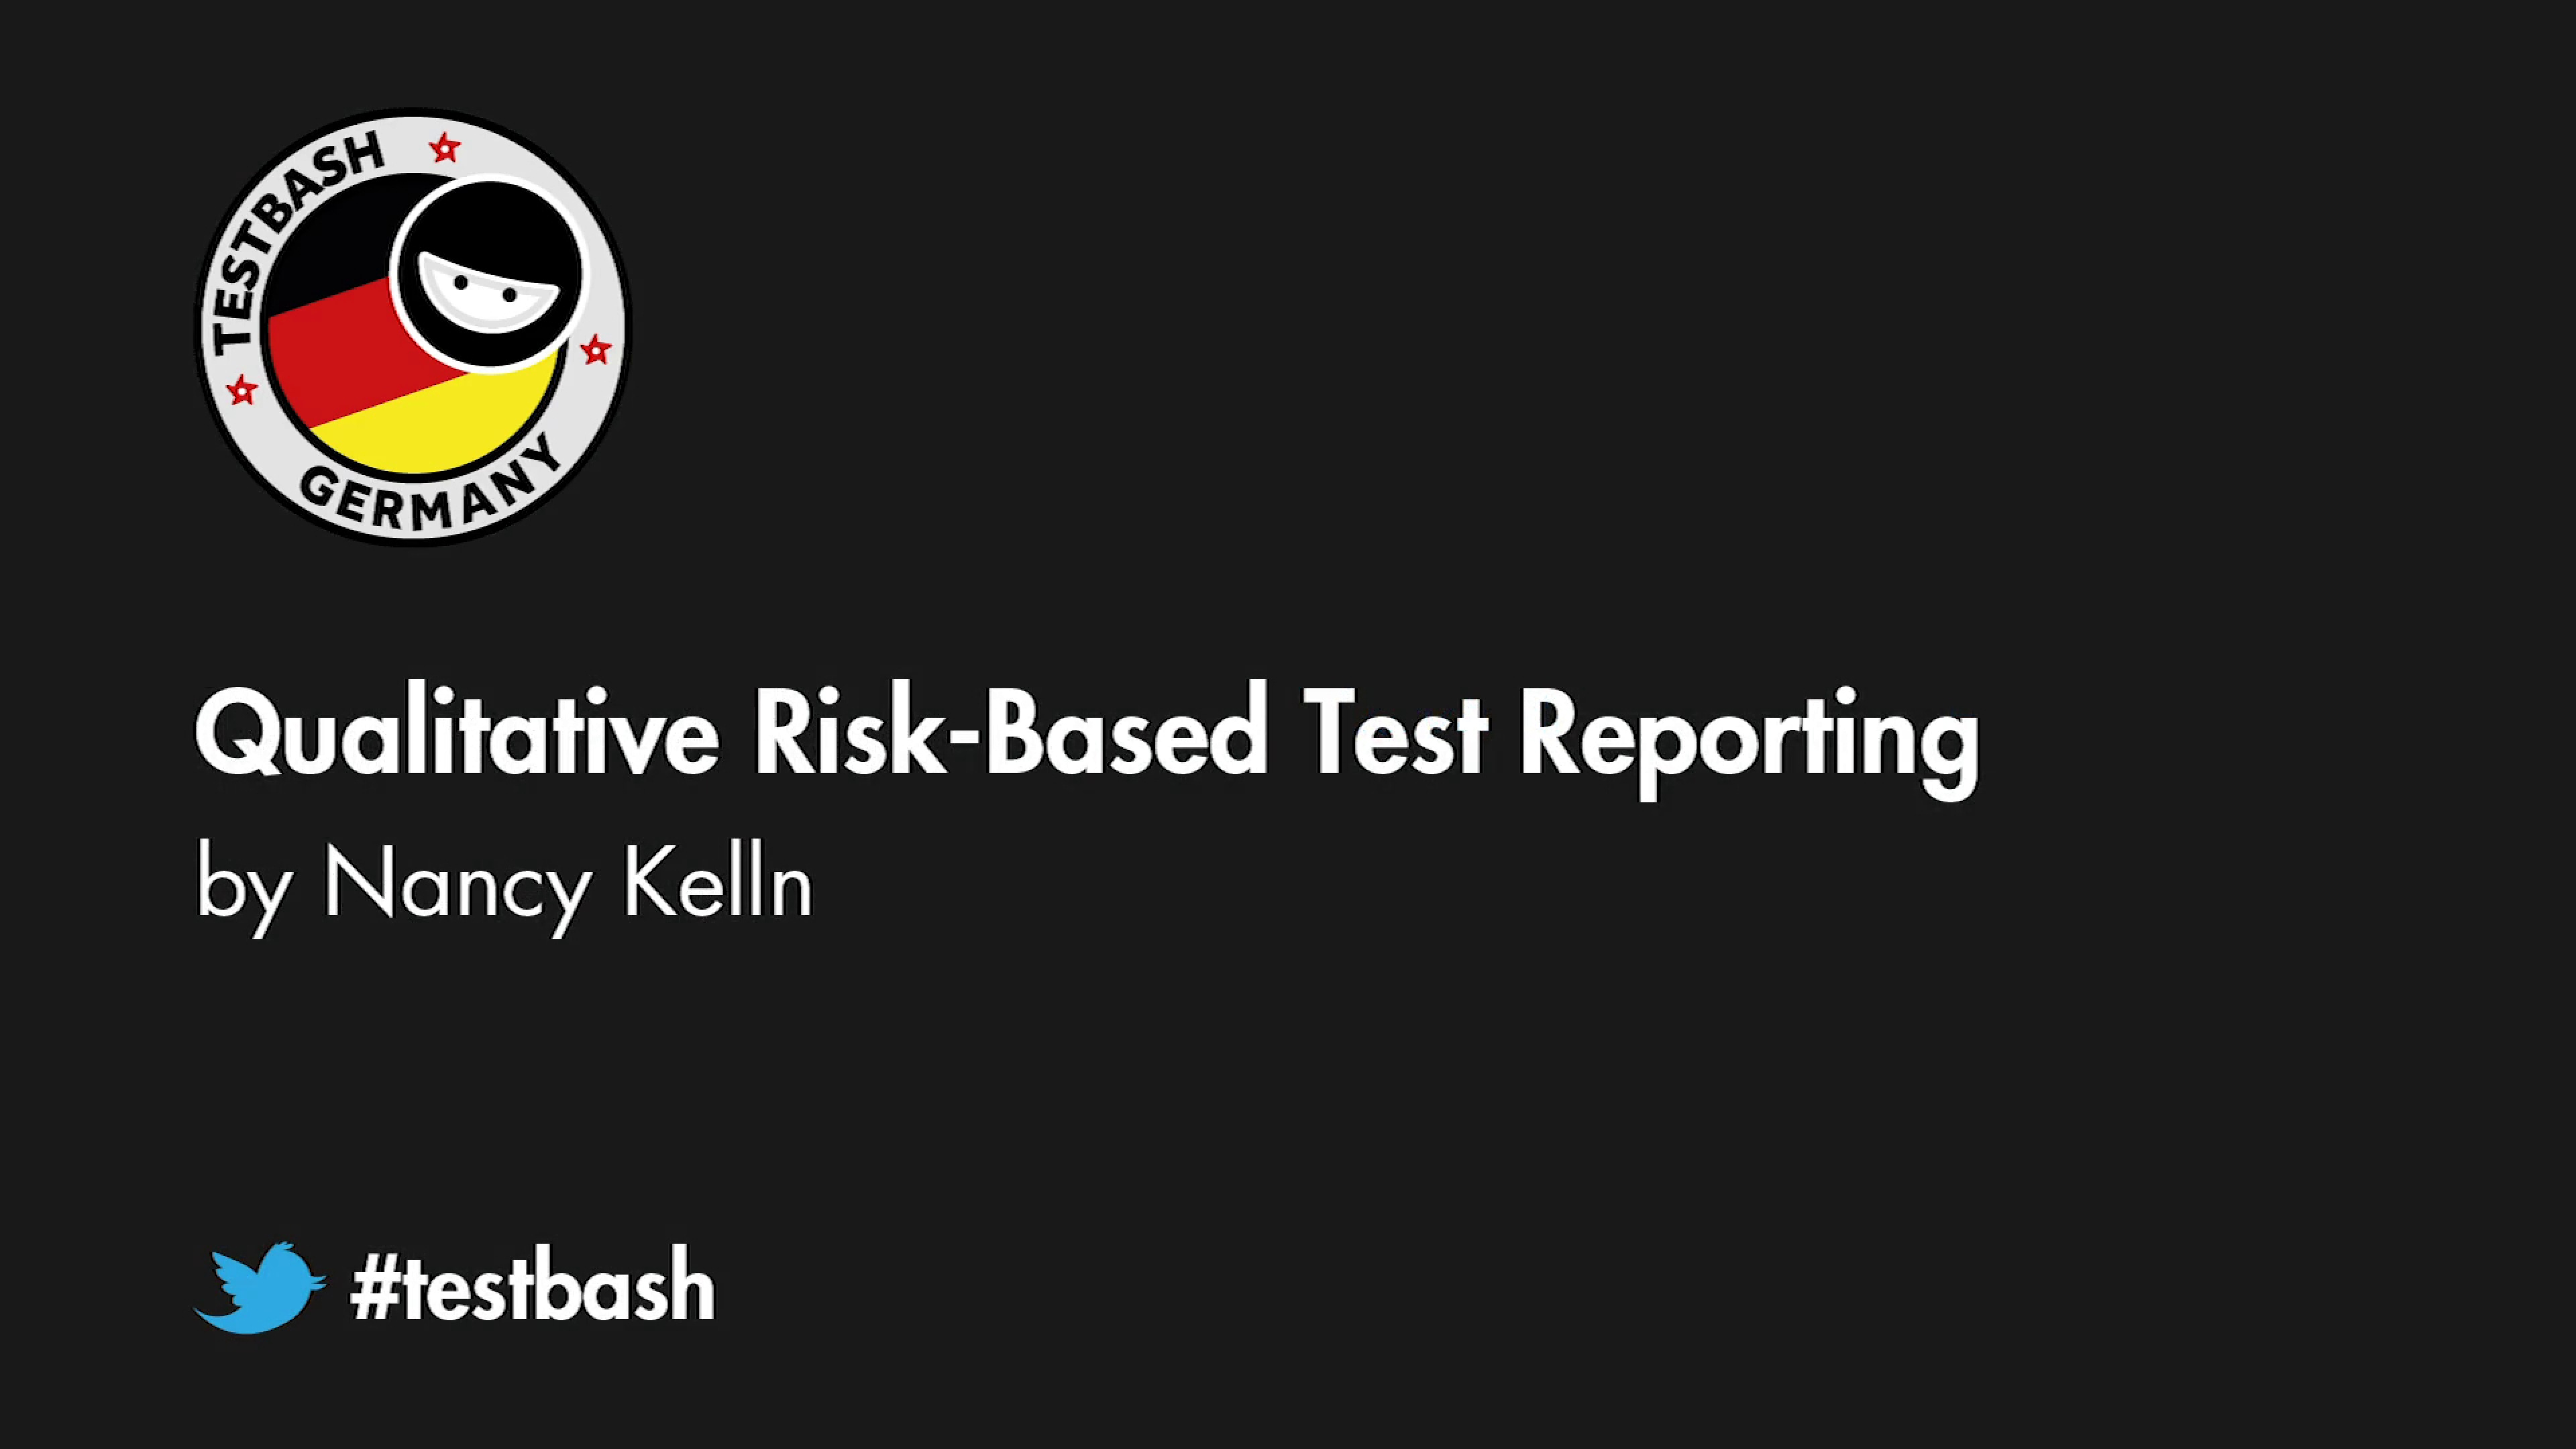 Qualitative Risk-Based Test Reporting - Nancy Kelln